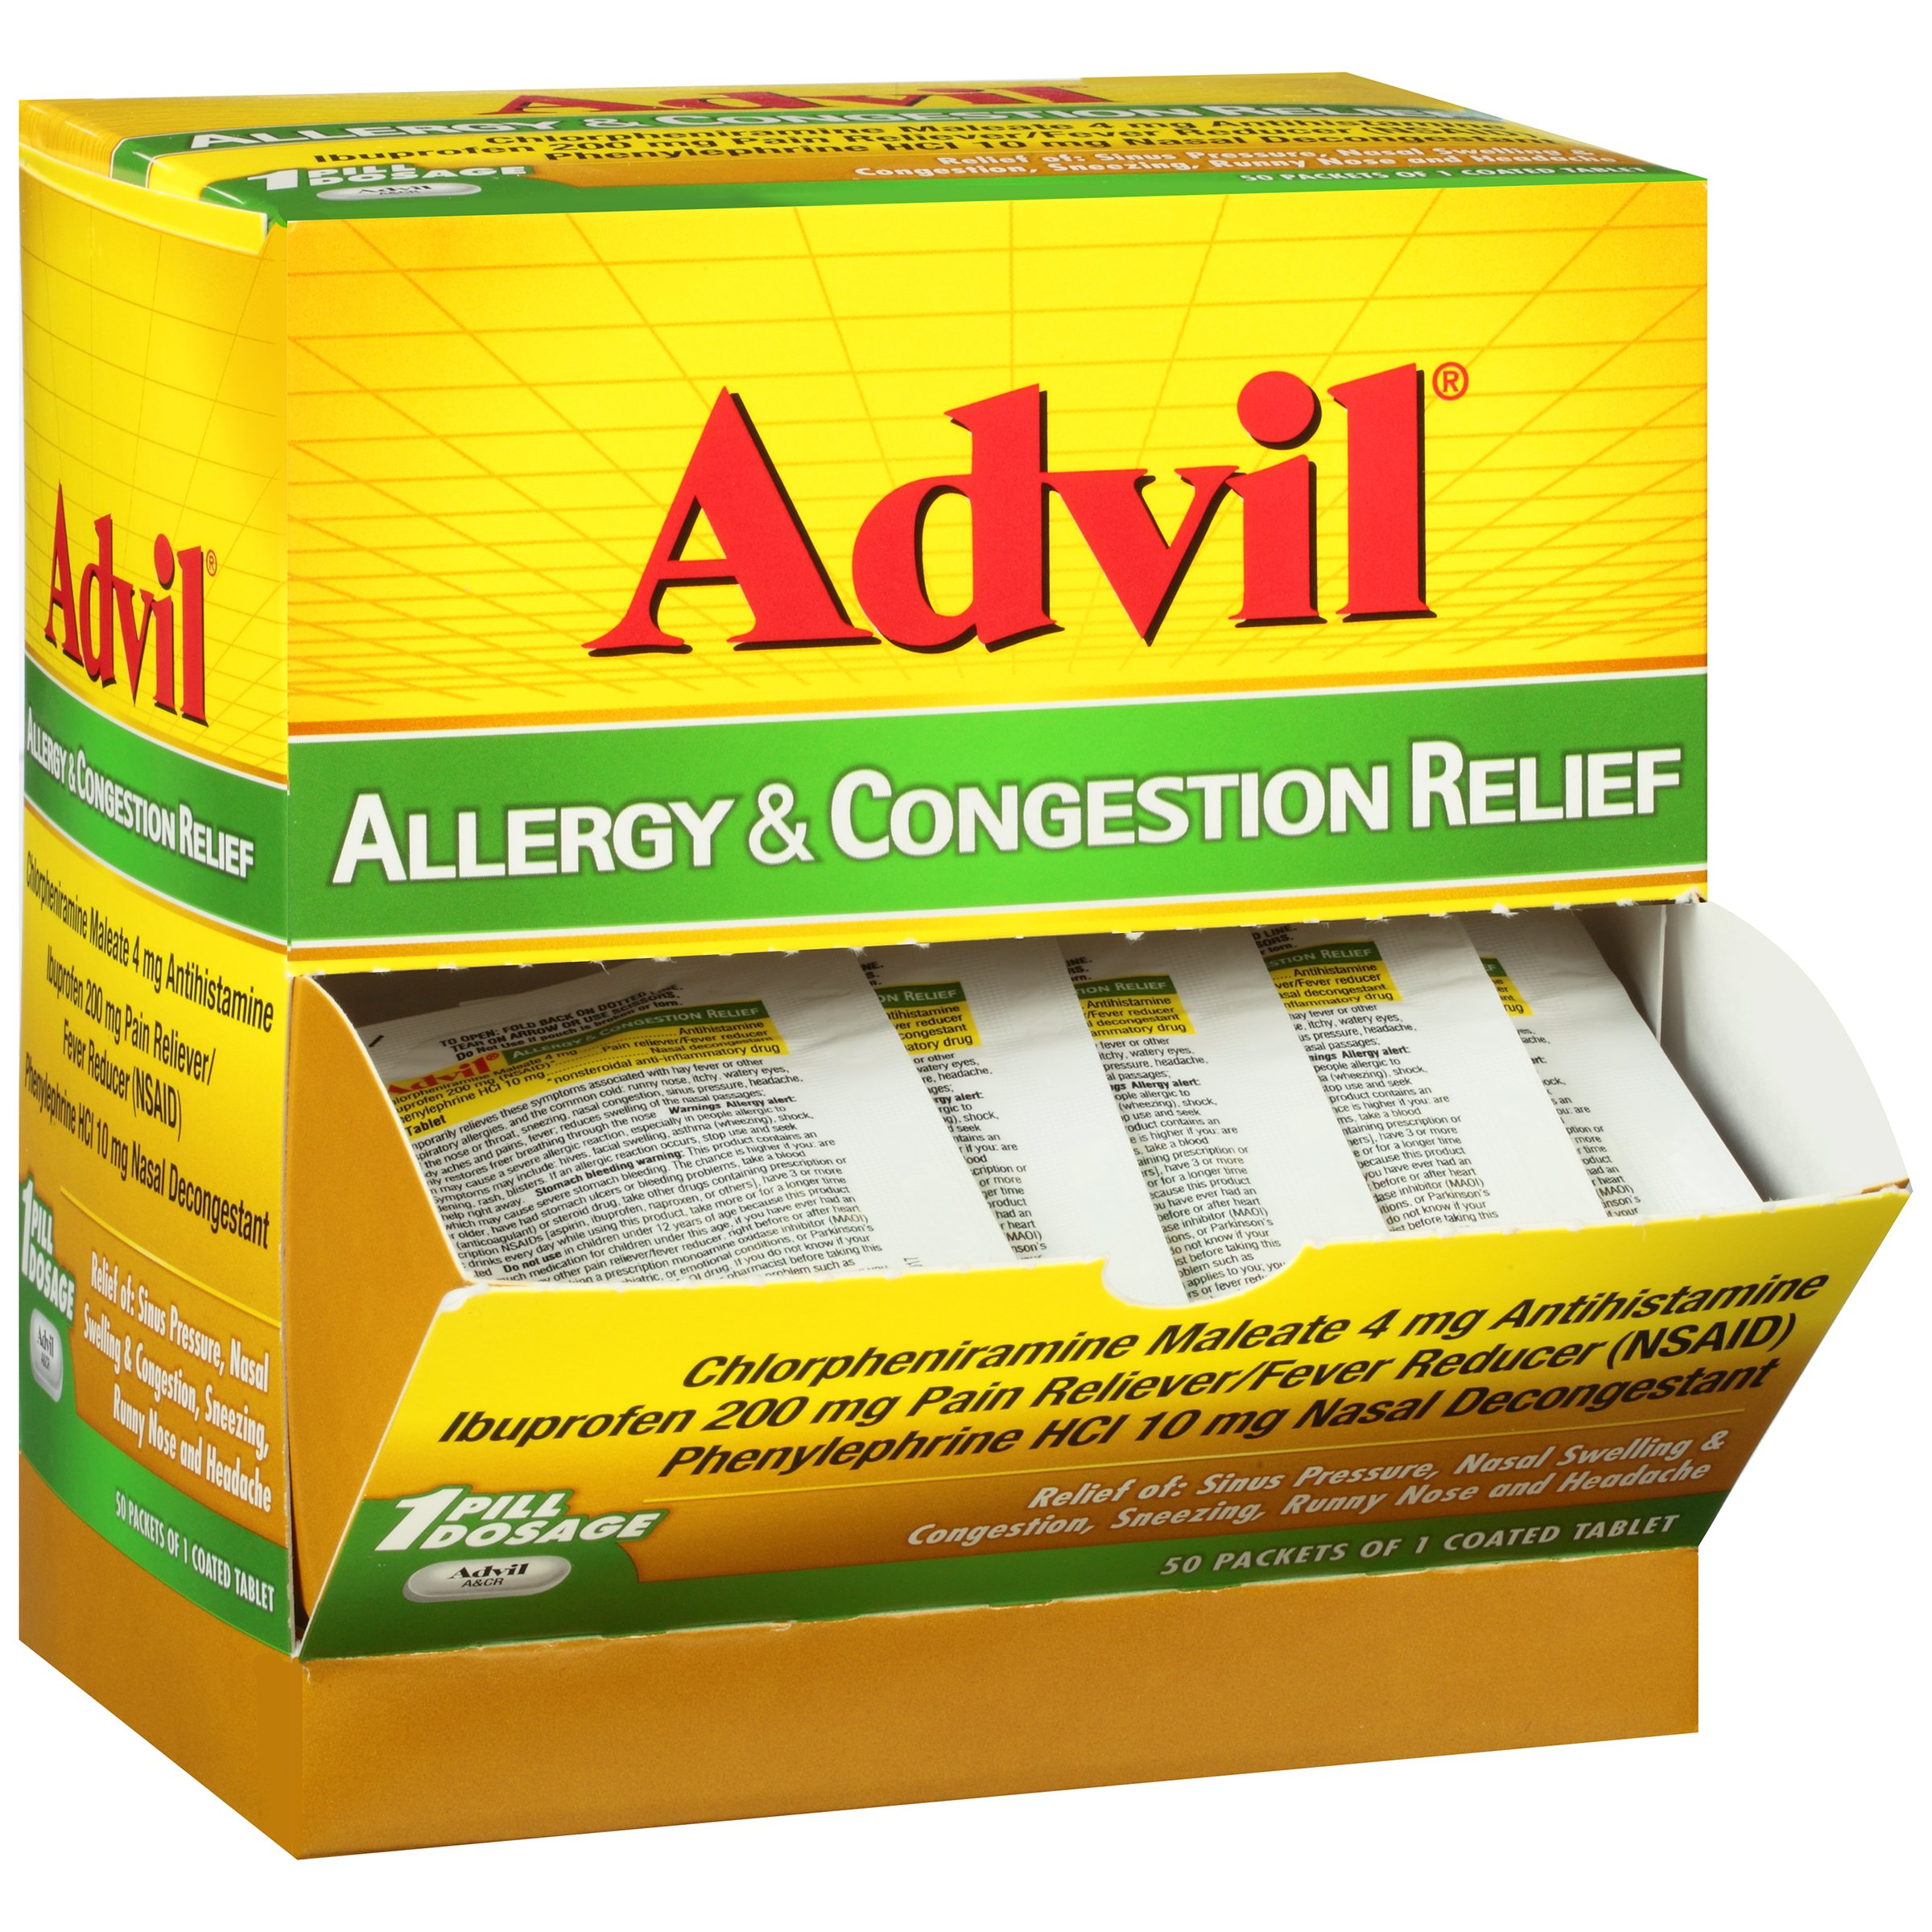 Advil Allergy & Congestion Relief, Pain Reliever / Fever Reducer, 50 Count, Pack of 1 by Advil Sinus Congestion